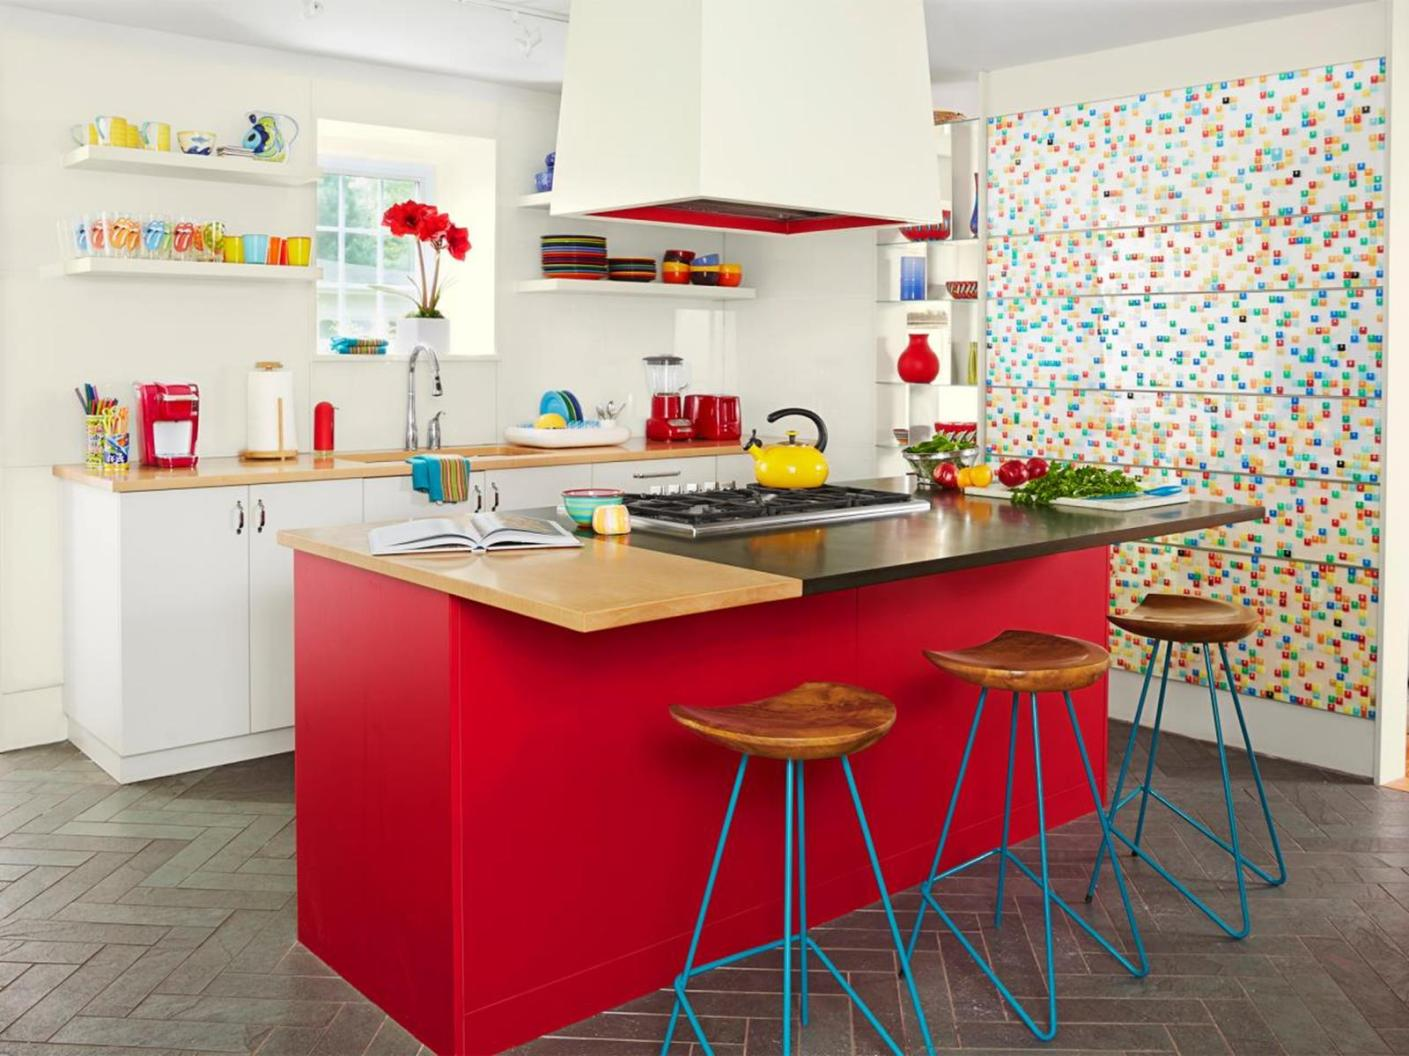 Projects to Make Kitchen More Neat and Beautiful 39